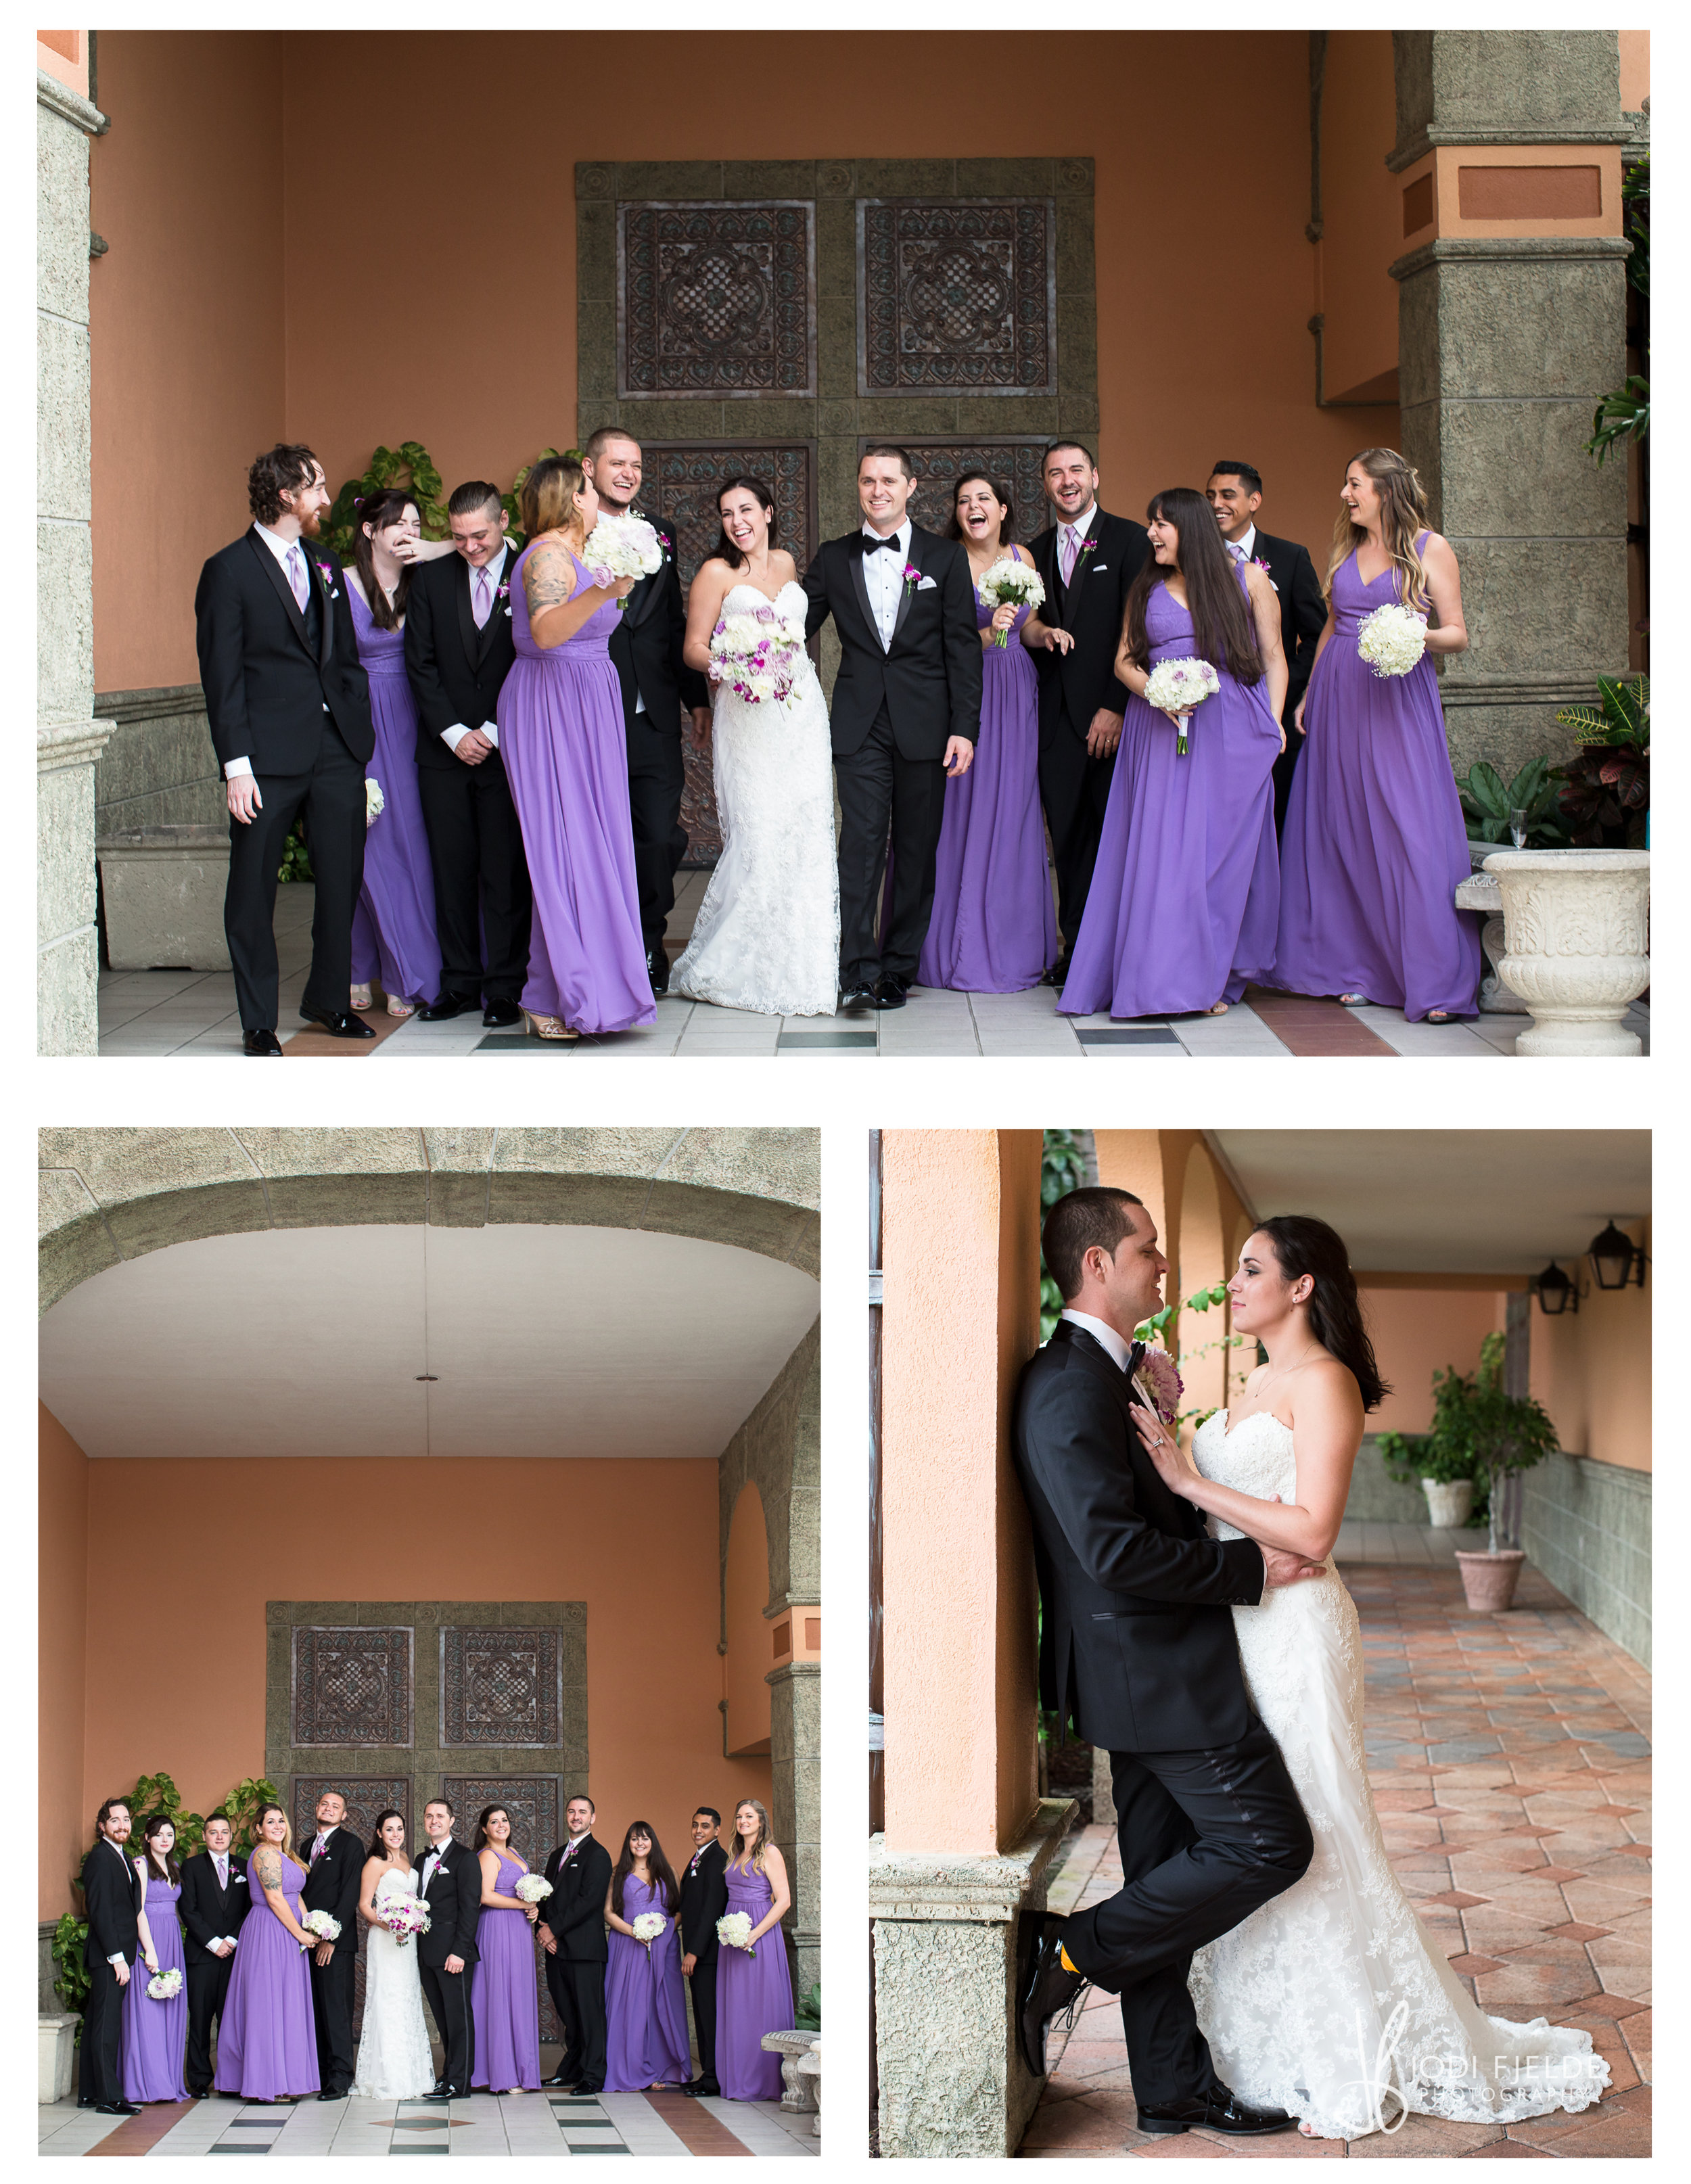 Fort-Lauderdale-Signature-grand-wedding-Paola-and-Max-married-20.jpg